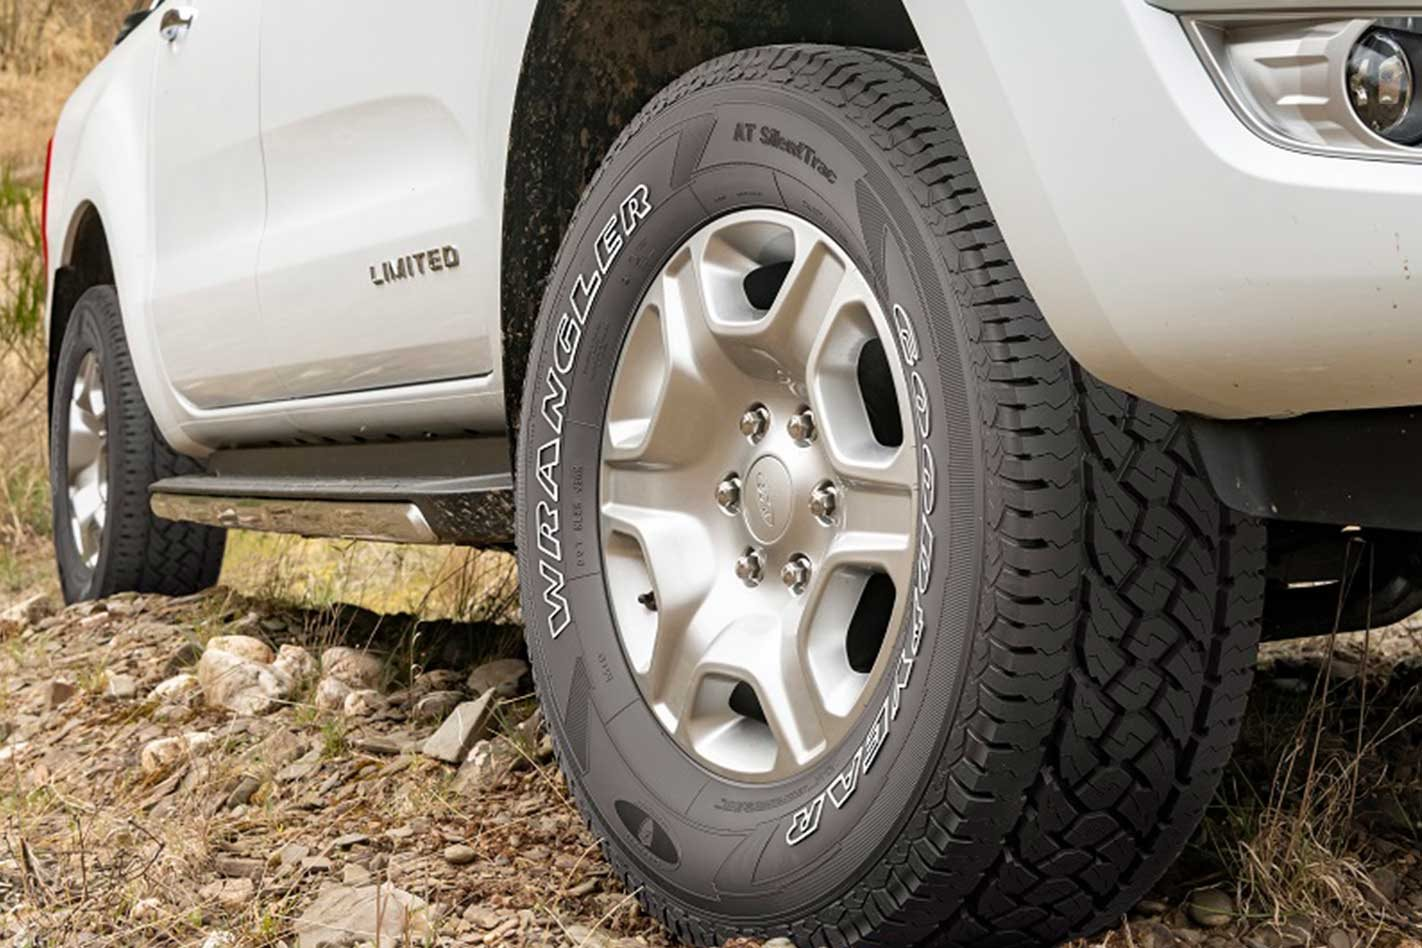 New rubber from Goodyear and Cooper Tires